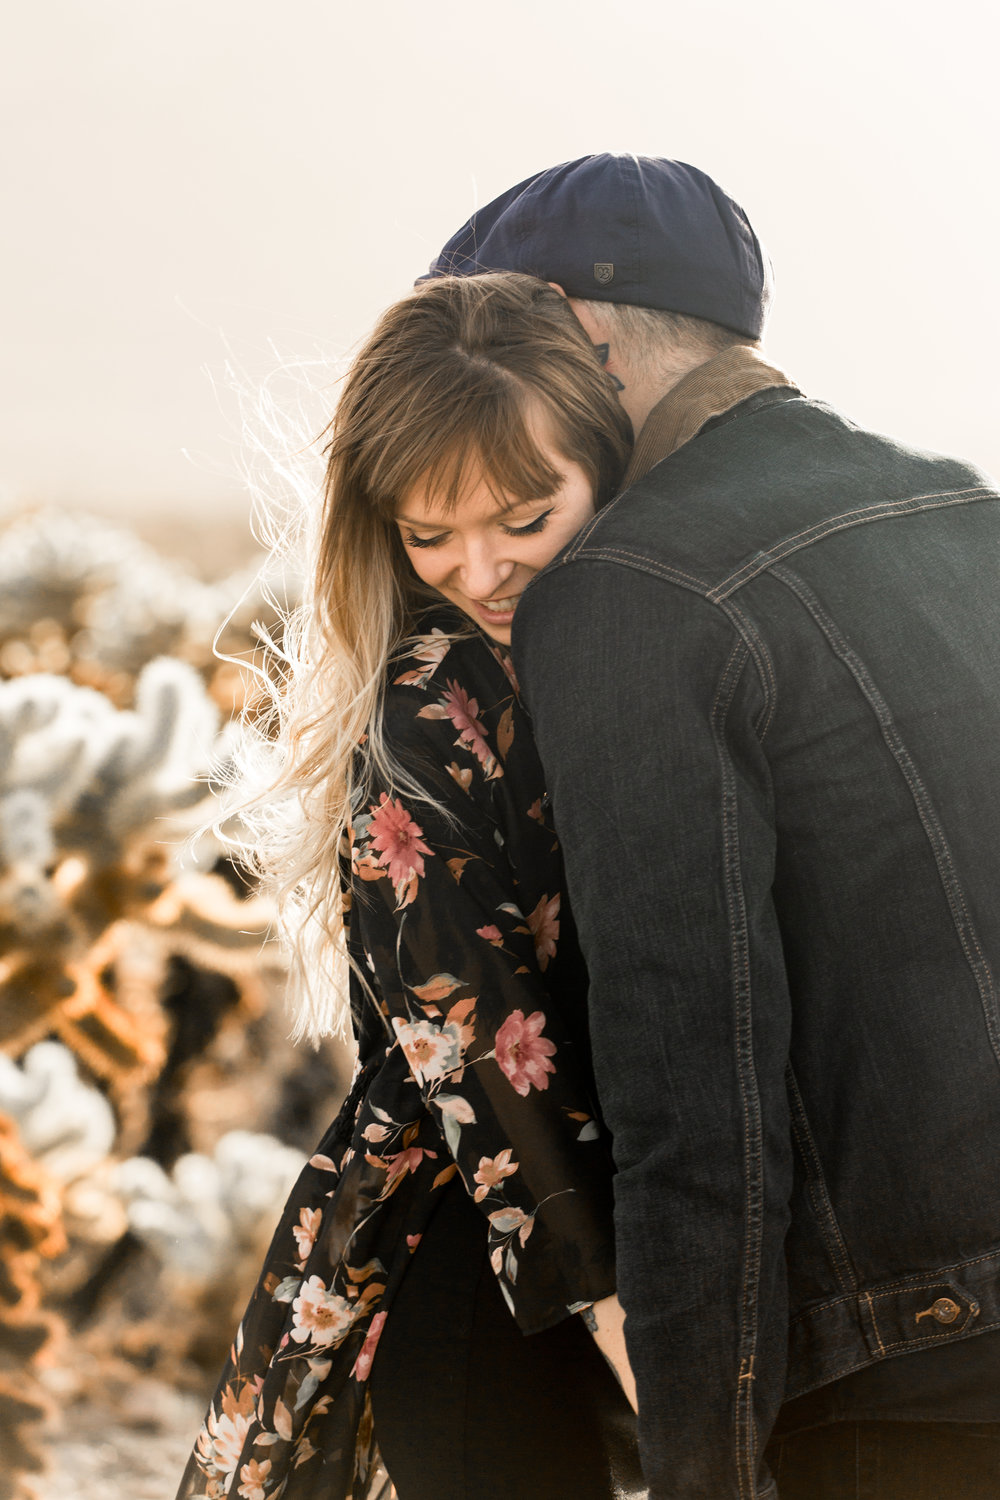 nicole-daacke-photography-joshua-tree-cactus-garden-engagement-photos-joshua-tree-national-park-enegagement-session-edgy-hipster-california-cholla-garden-golden-sunset-session-18.jpg